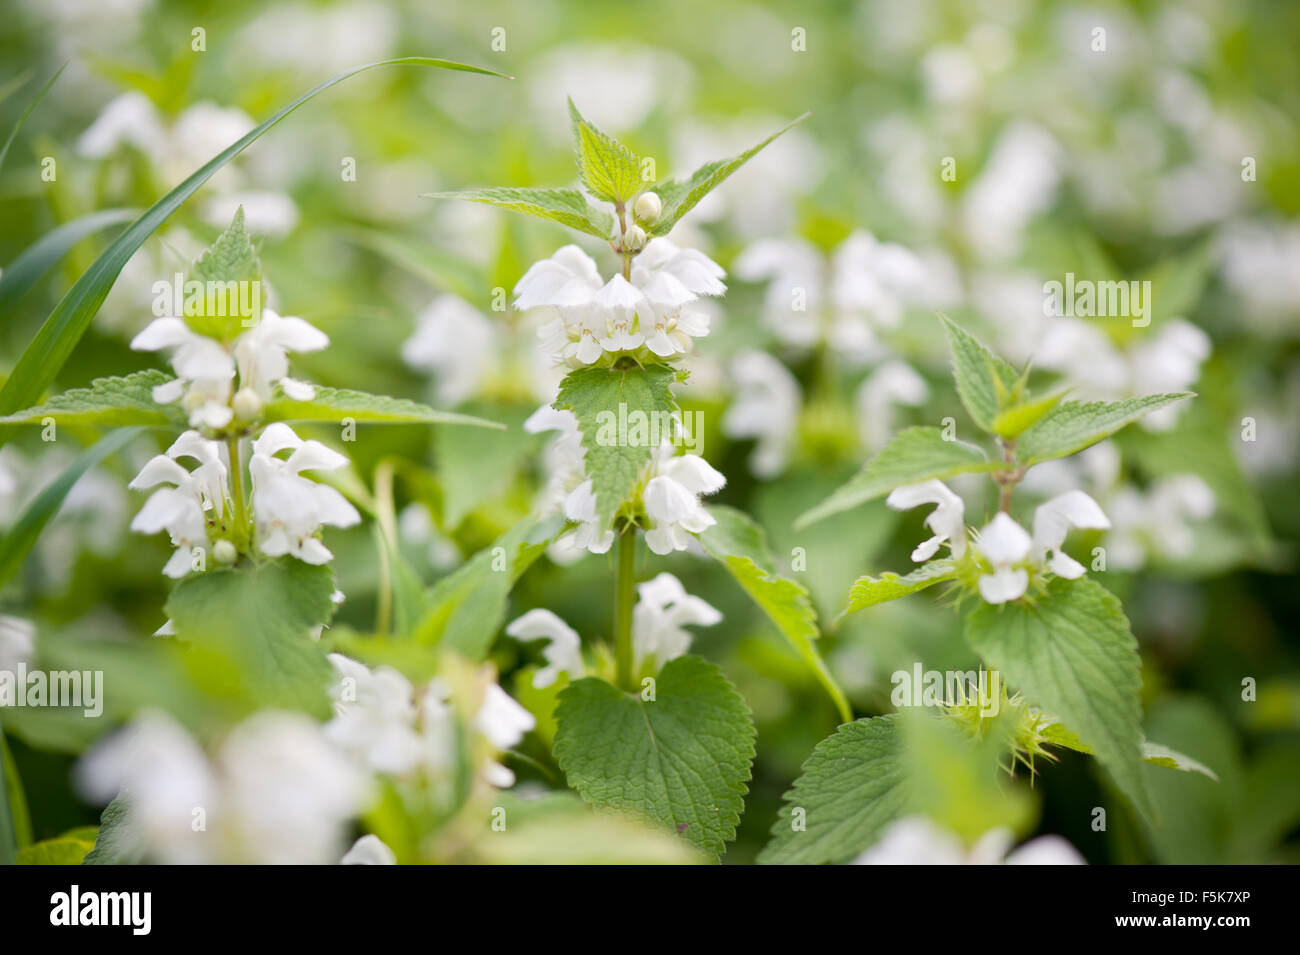 Lamium Album White Flowers Closeup Herbal Medicine Flowering Stock